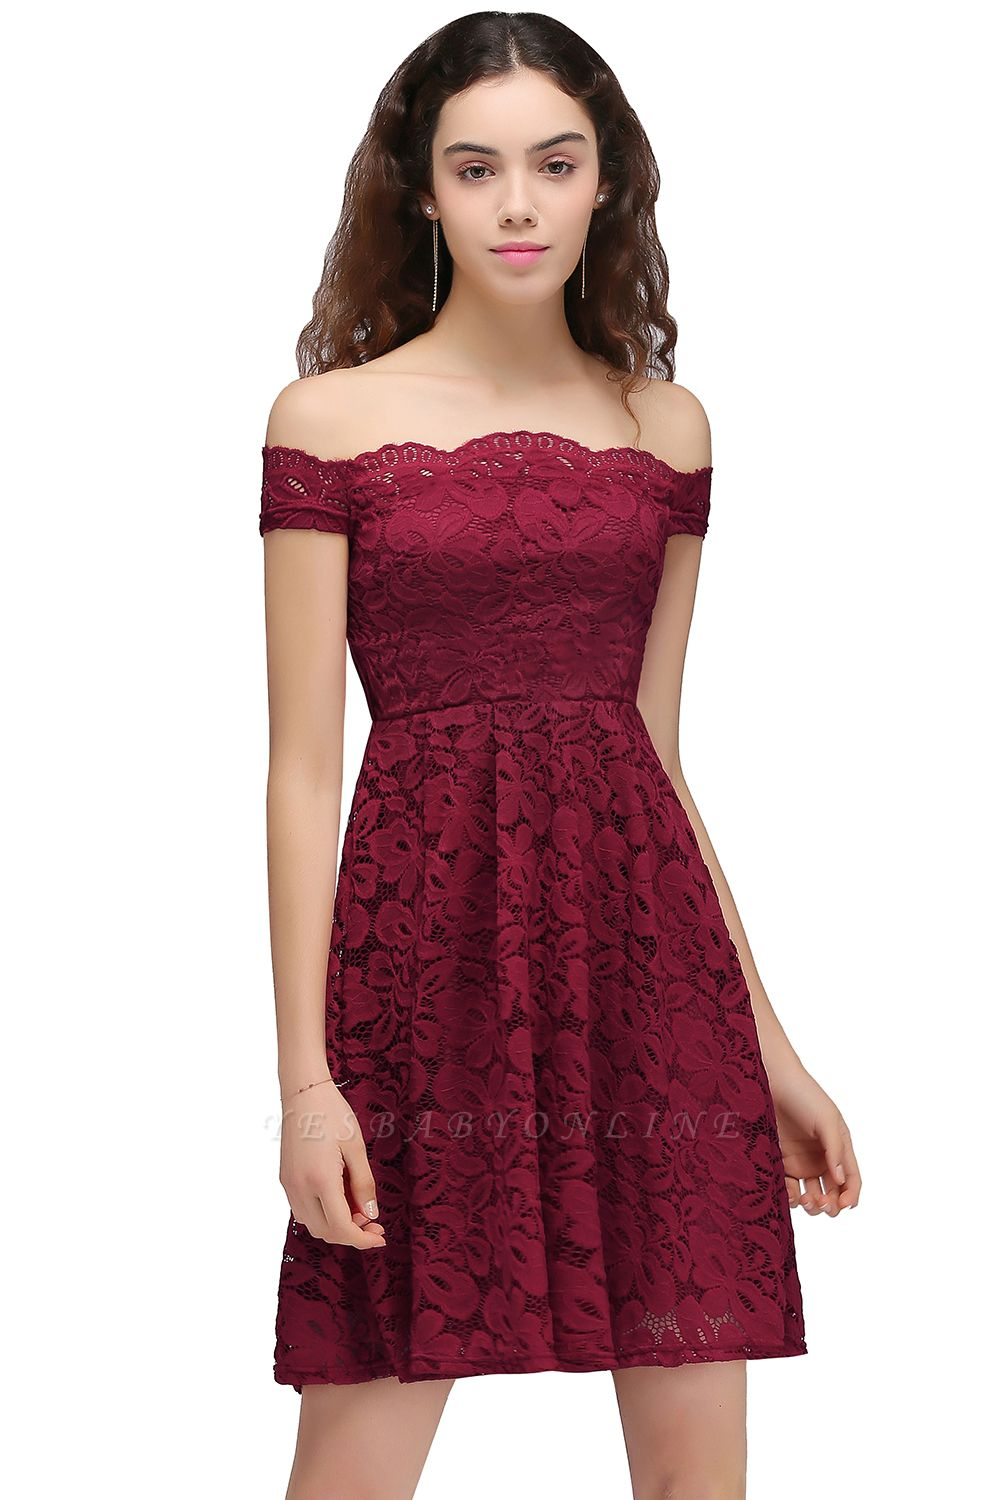 Cheap A-Line Off-the-shoulder Short Burgundy Lace Homecoming Dress in Stock